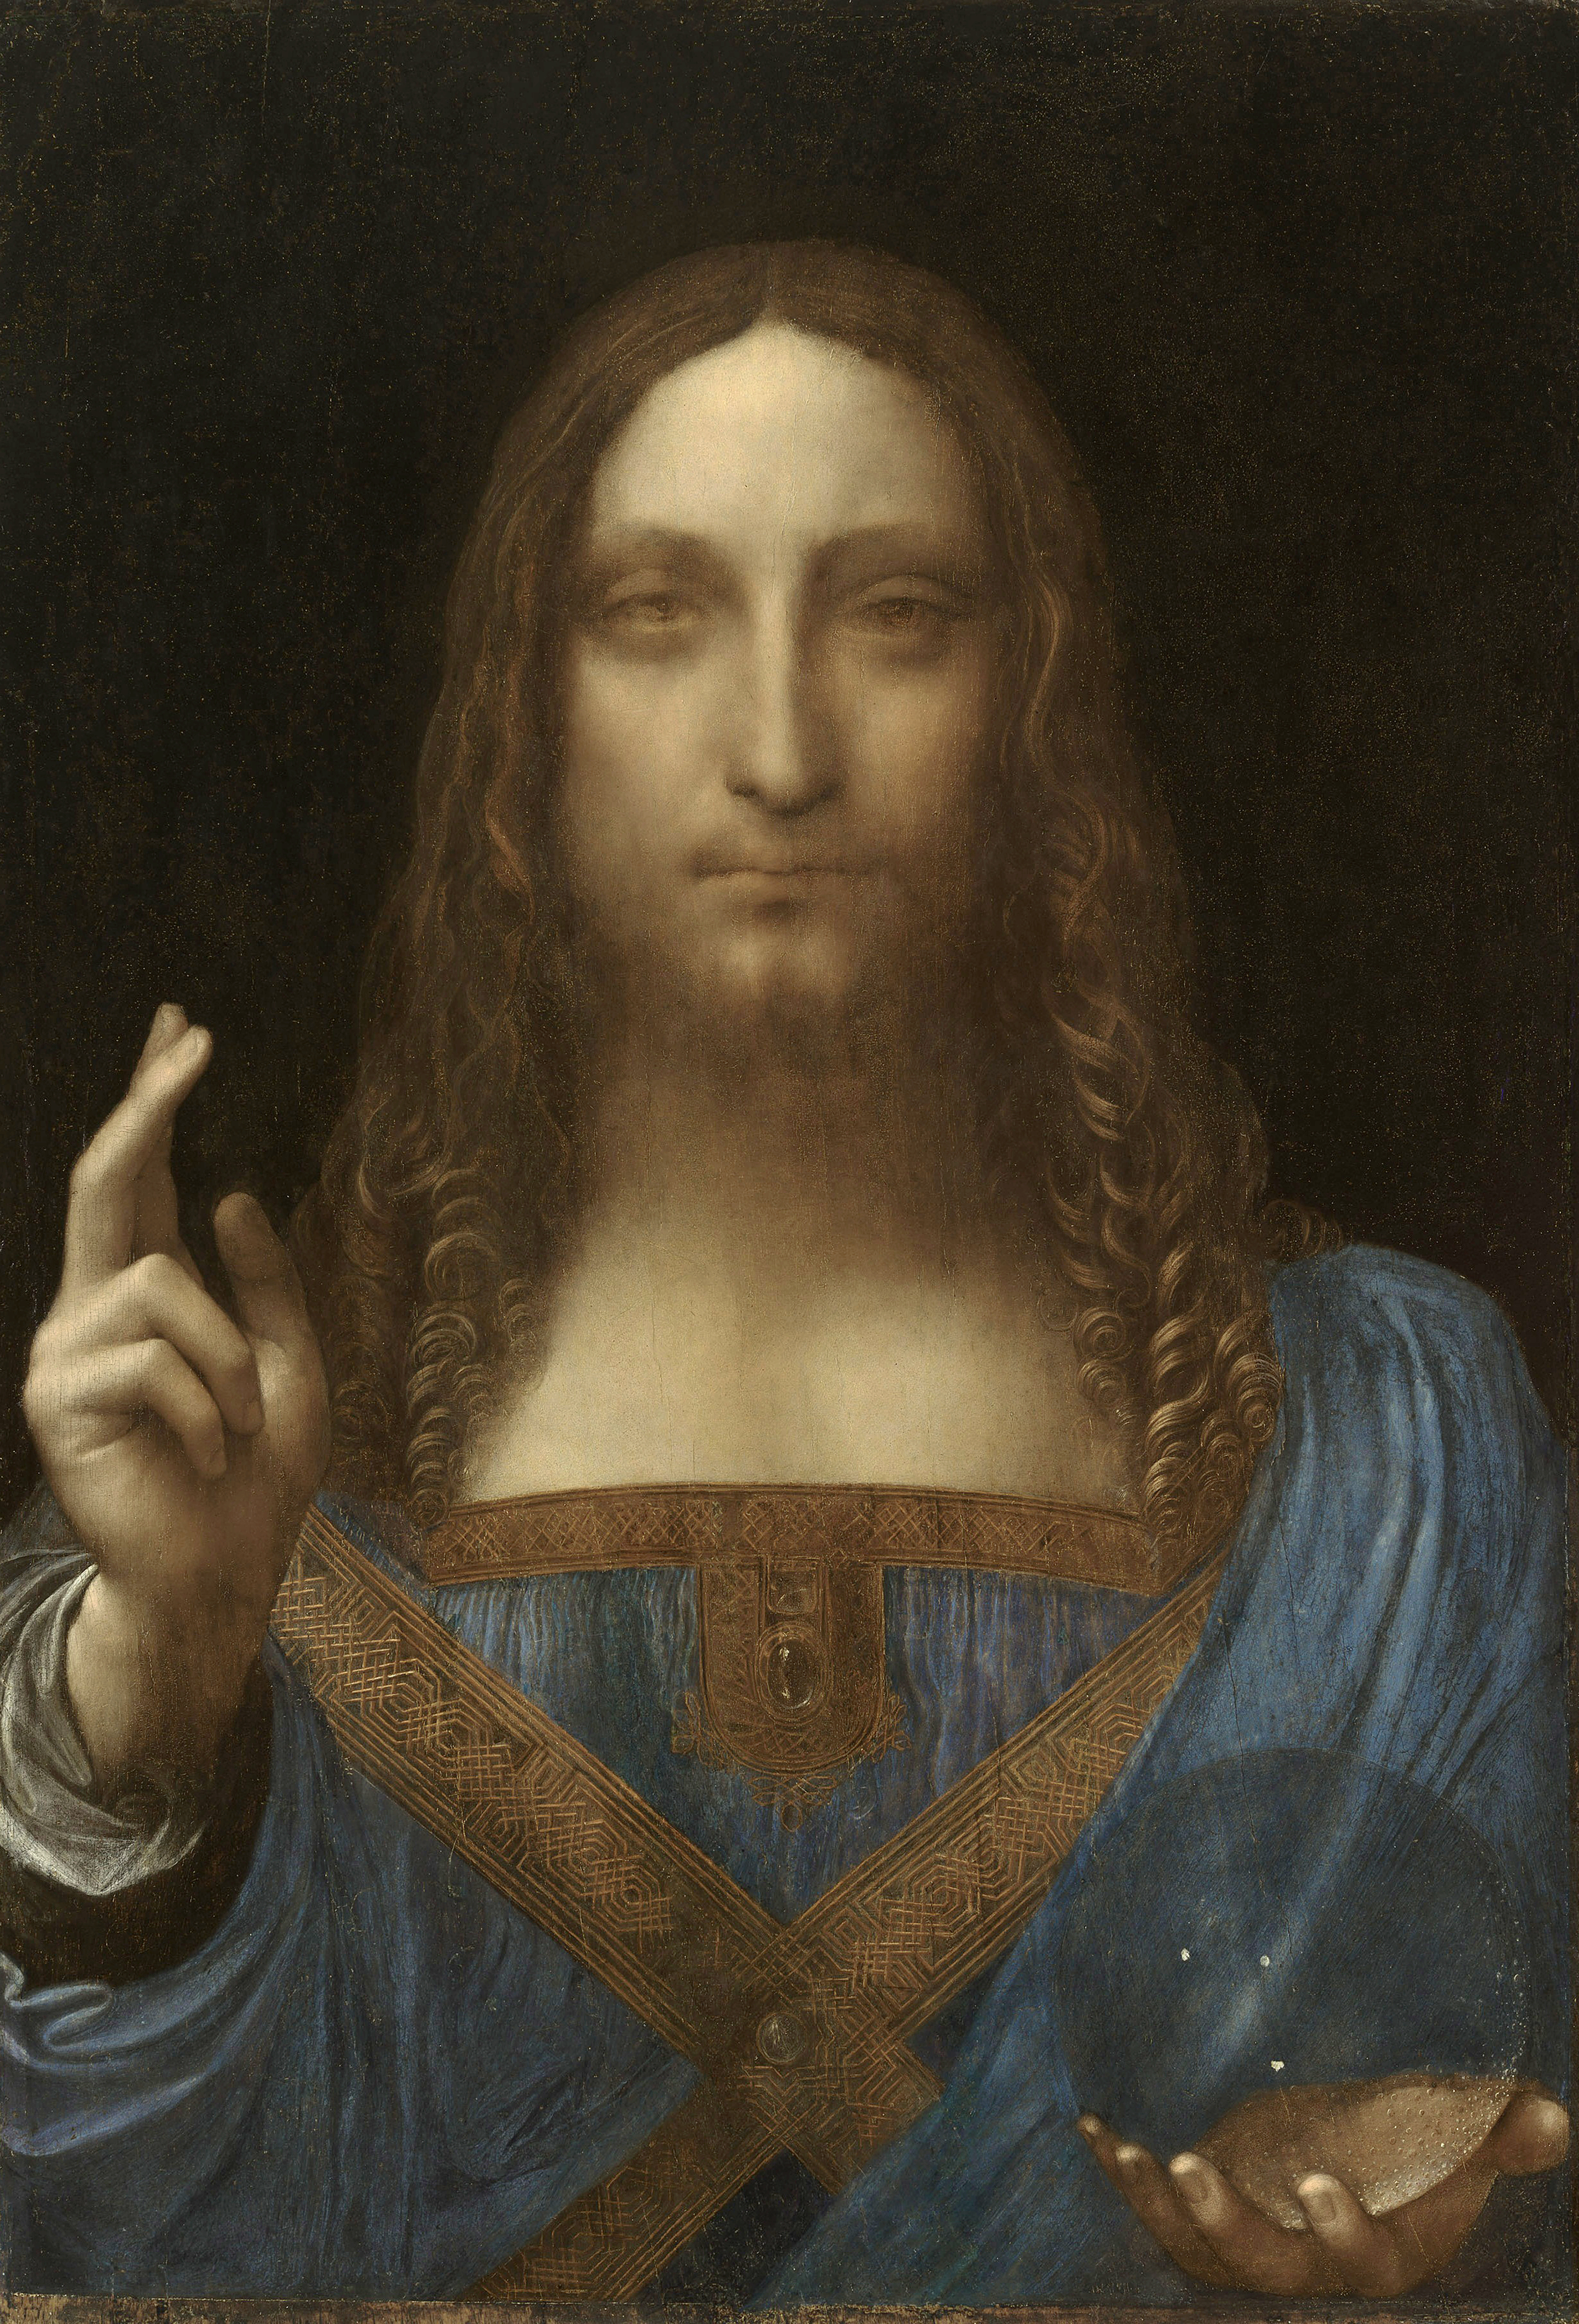 Leonardo da Vinci: Salvator Mundi, oil on walnut, 656 x 454 mm, c. 1500; public domain